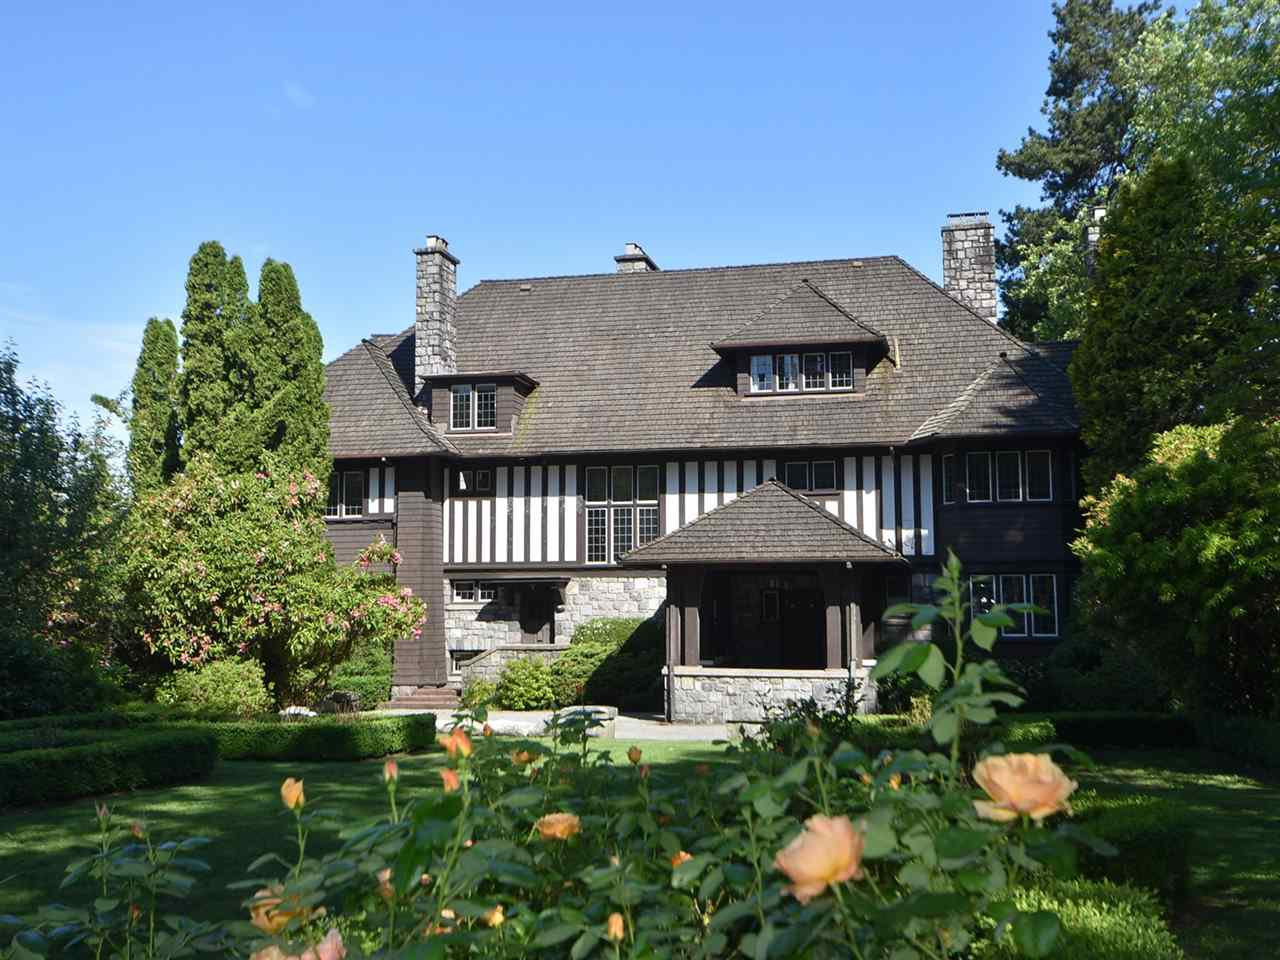 3333 THE Shaughnessy, Vancouver (R2207814)